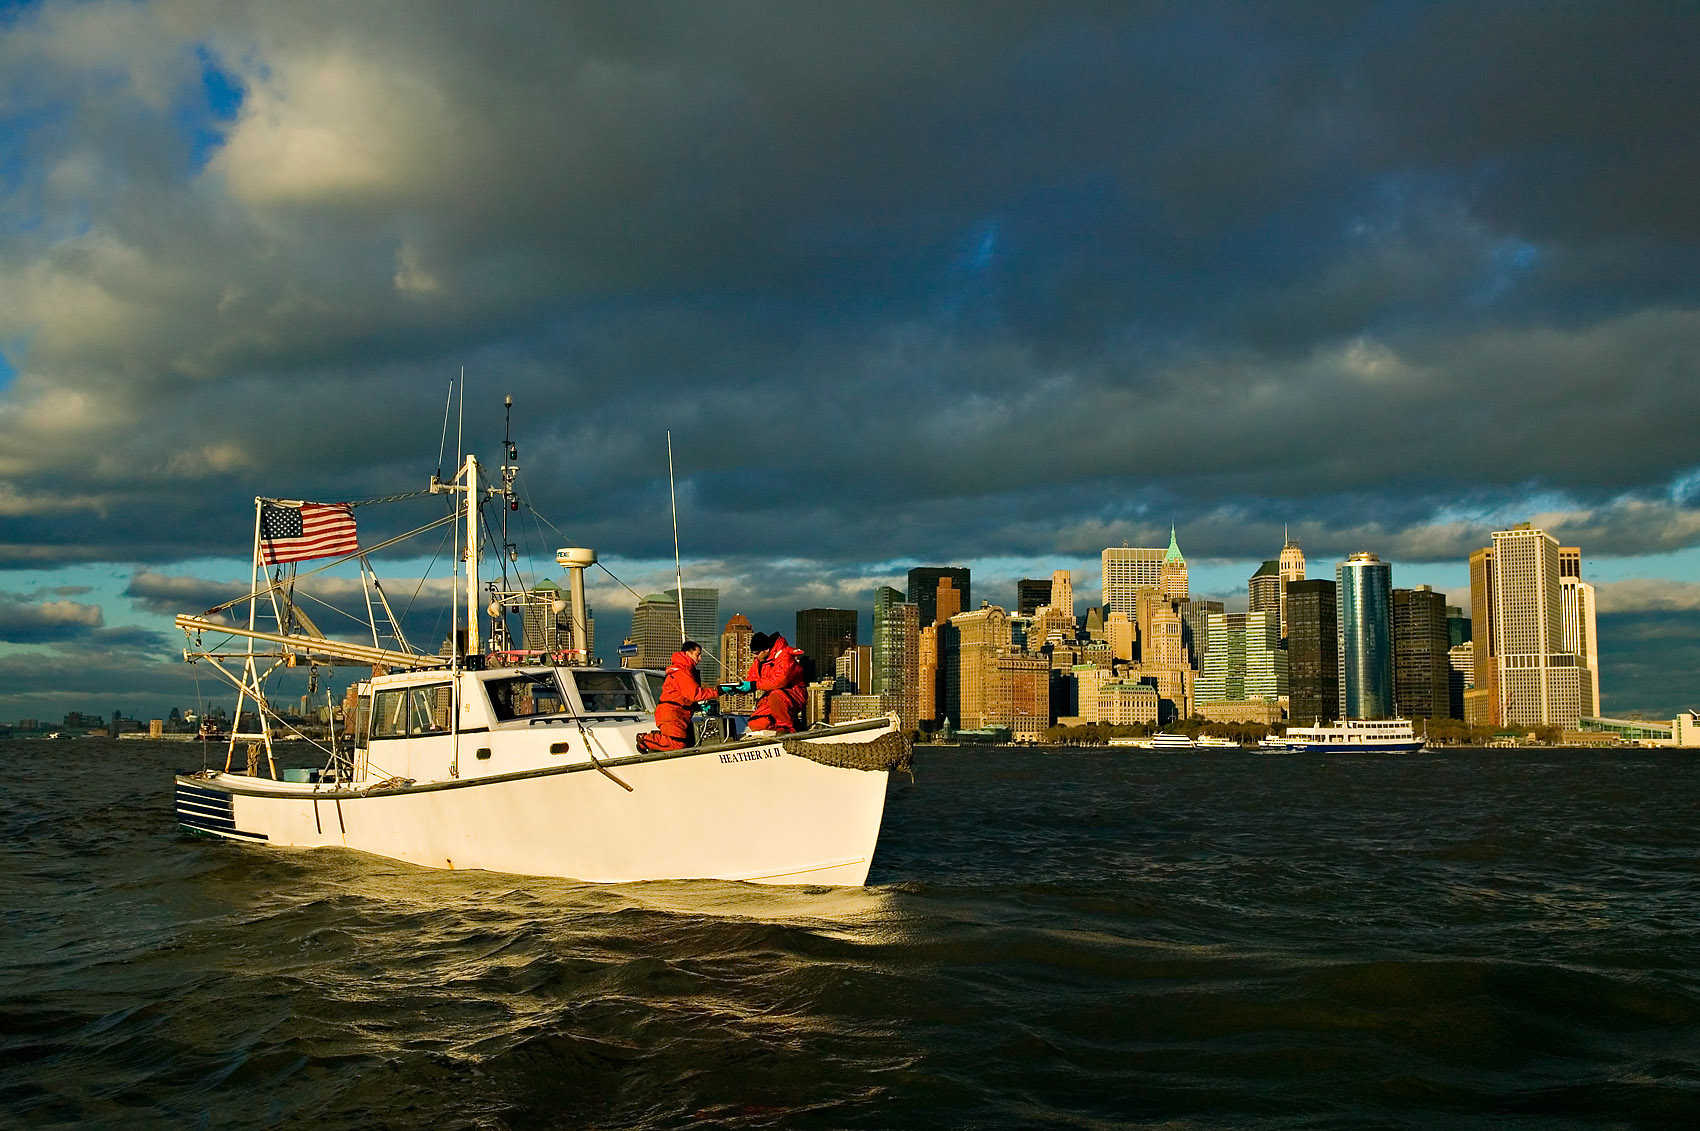 NYC Hudson River, EPA water study project.